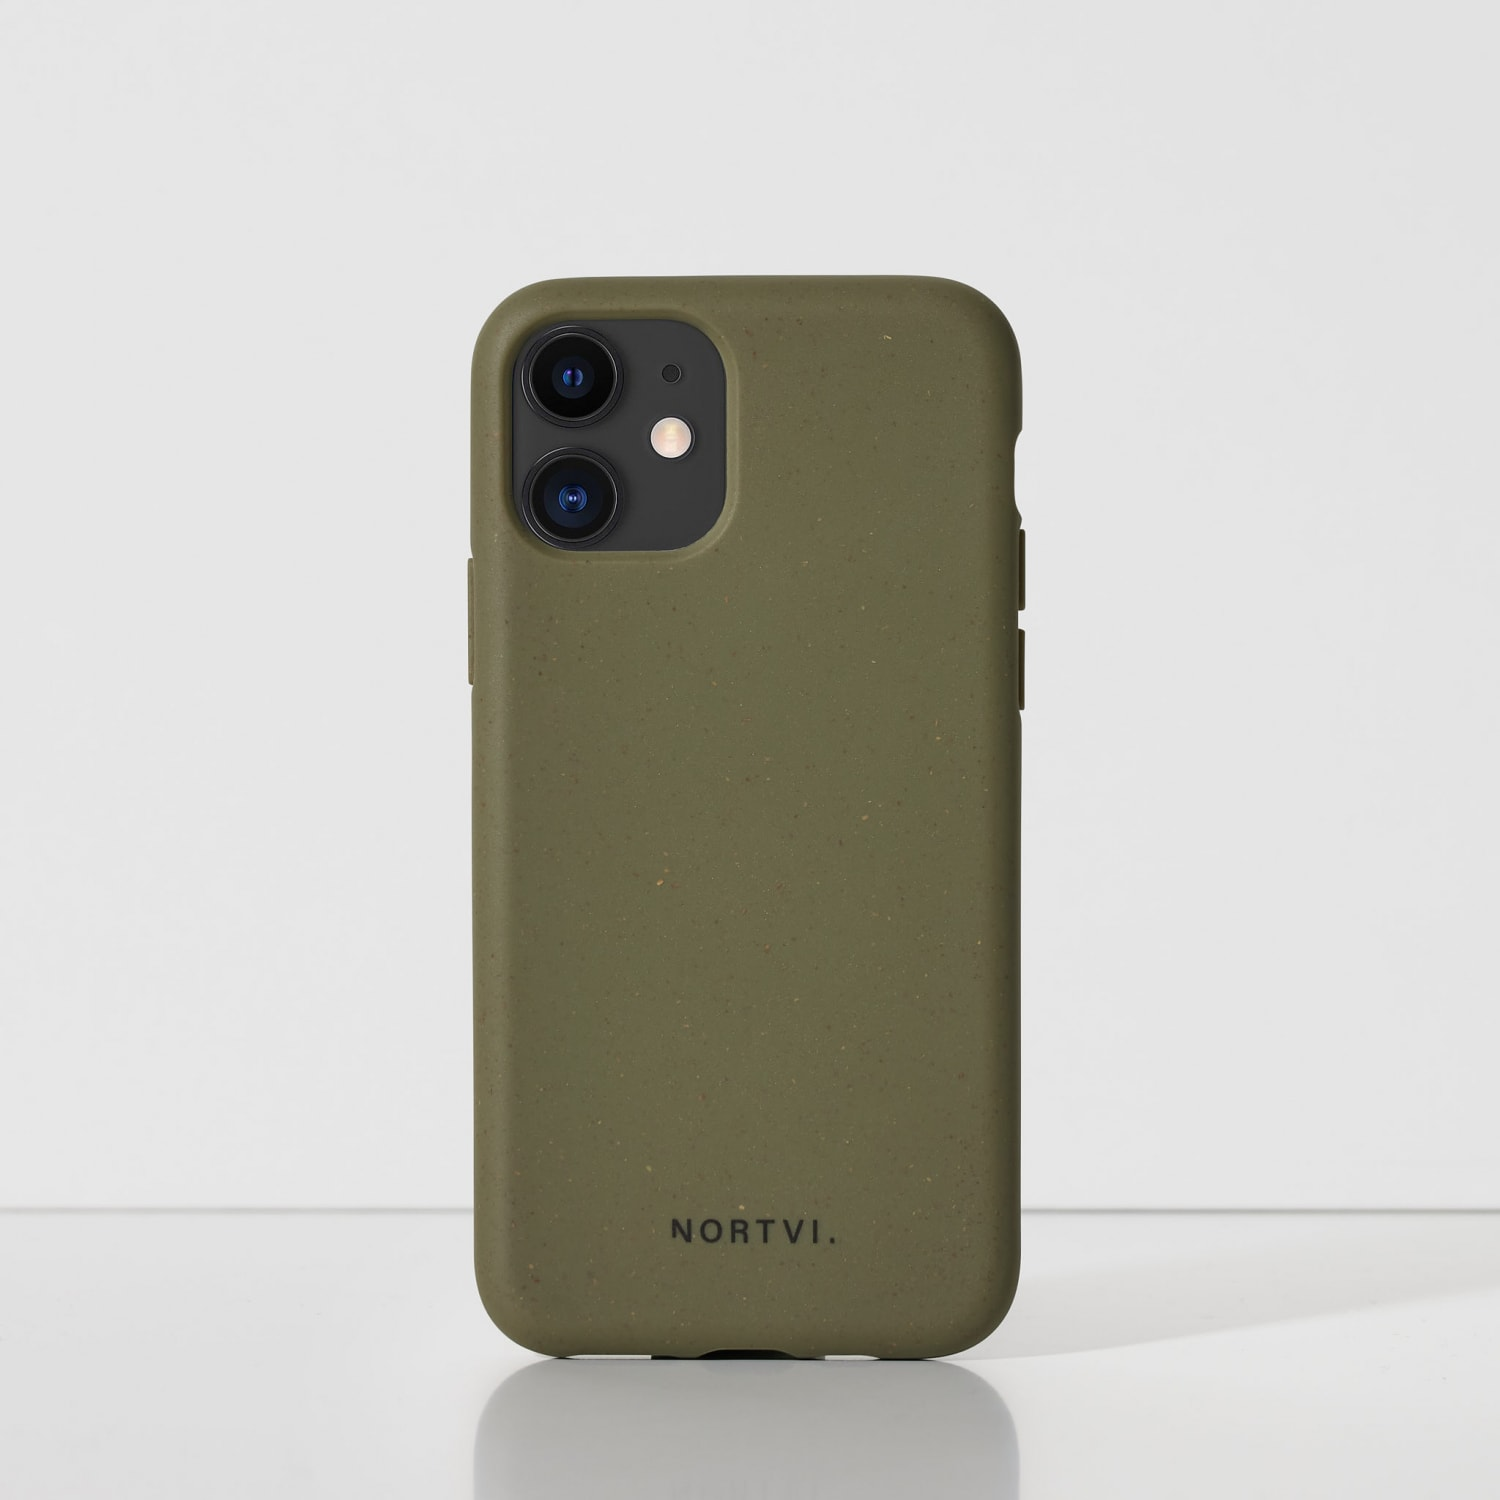 NORTVI green phone case for iPhone 11 Pro case